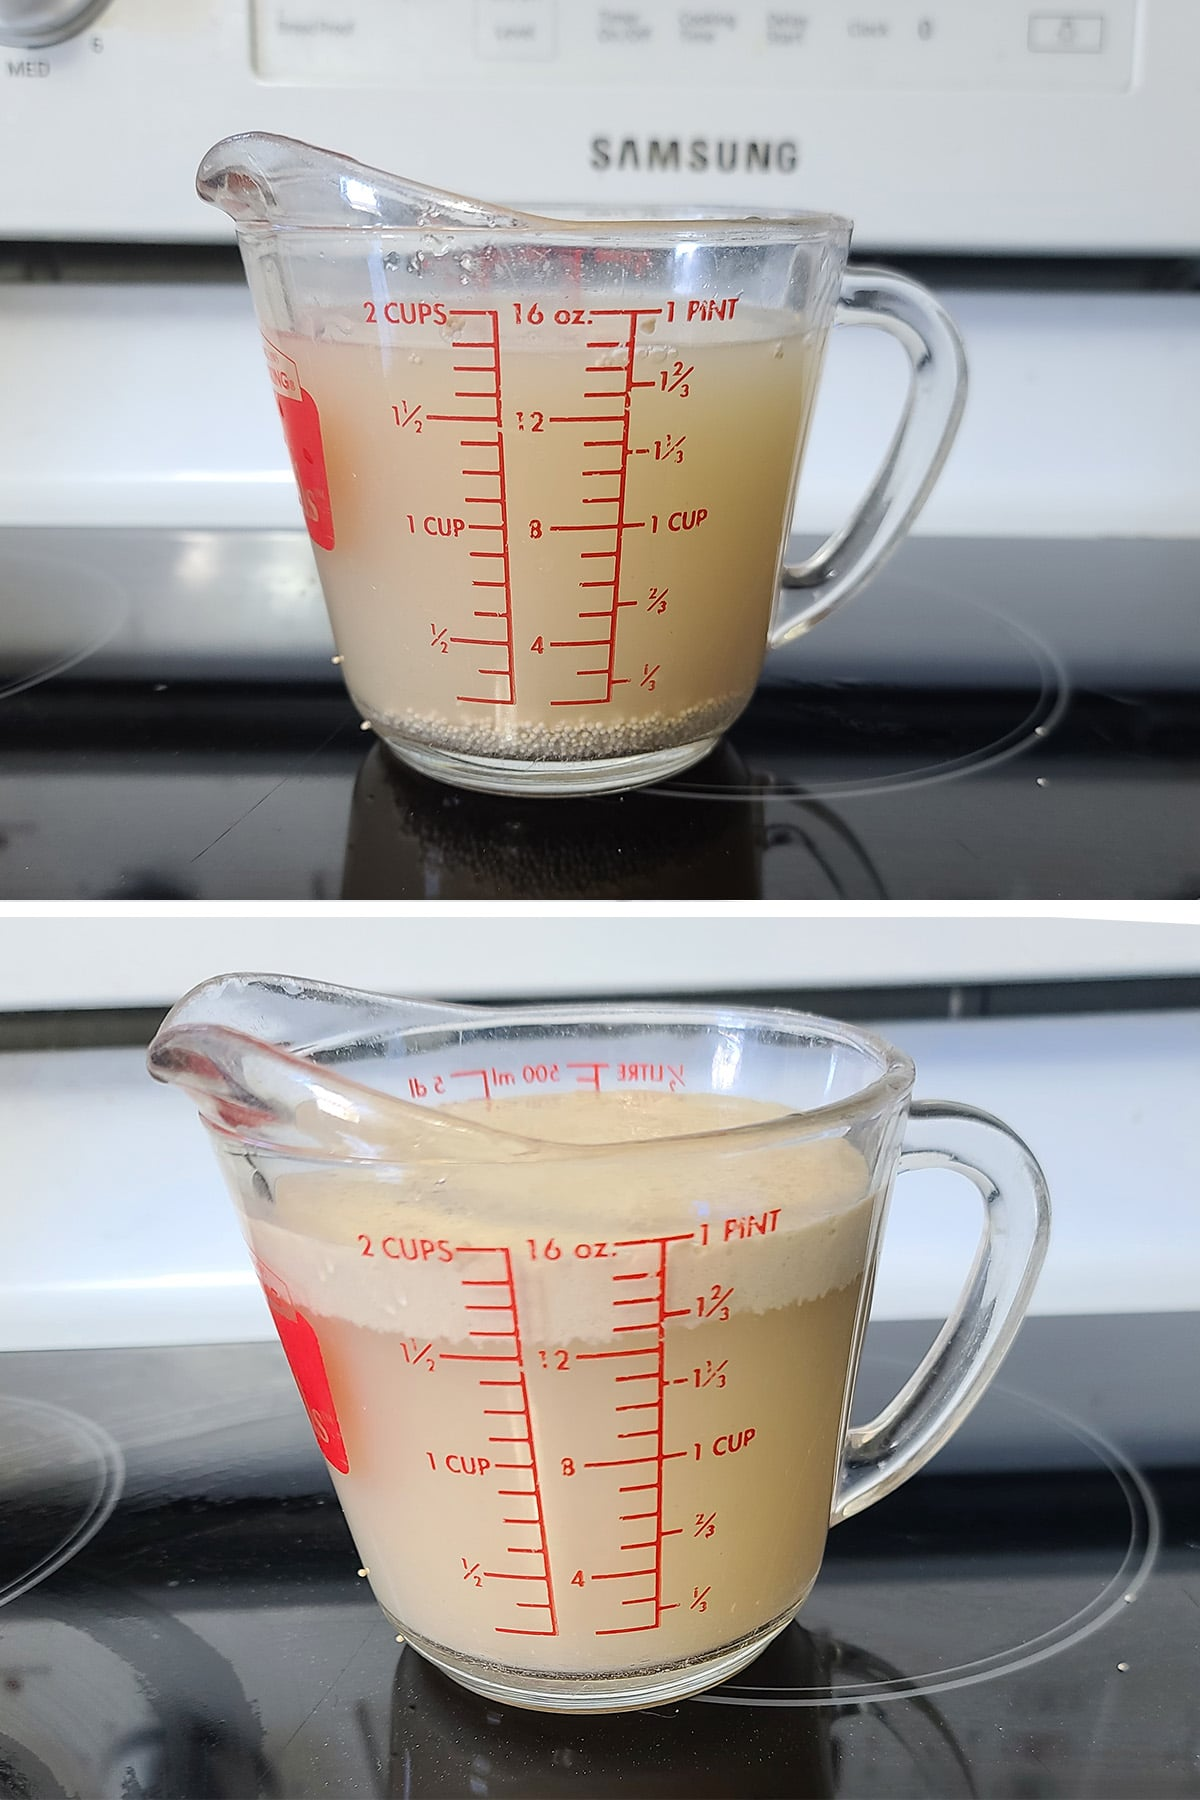 Yeast rising in a measuring cup of water.